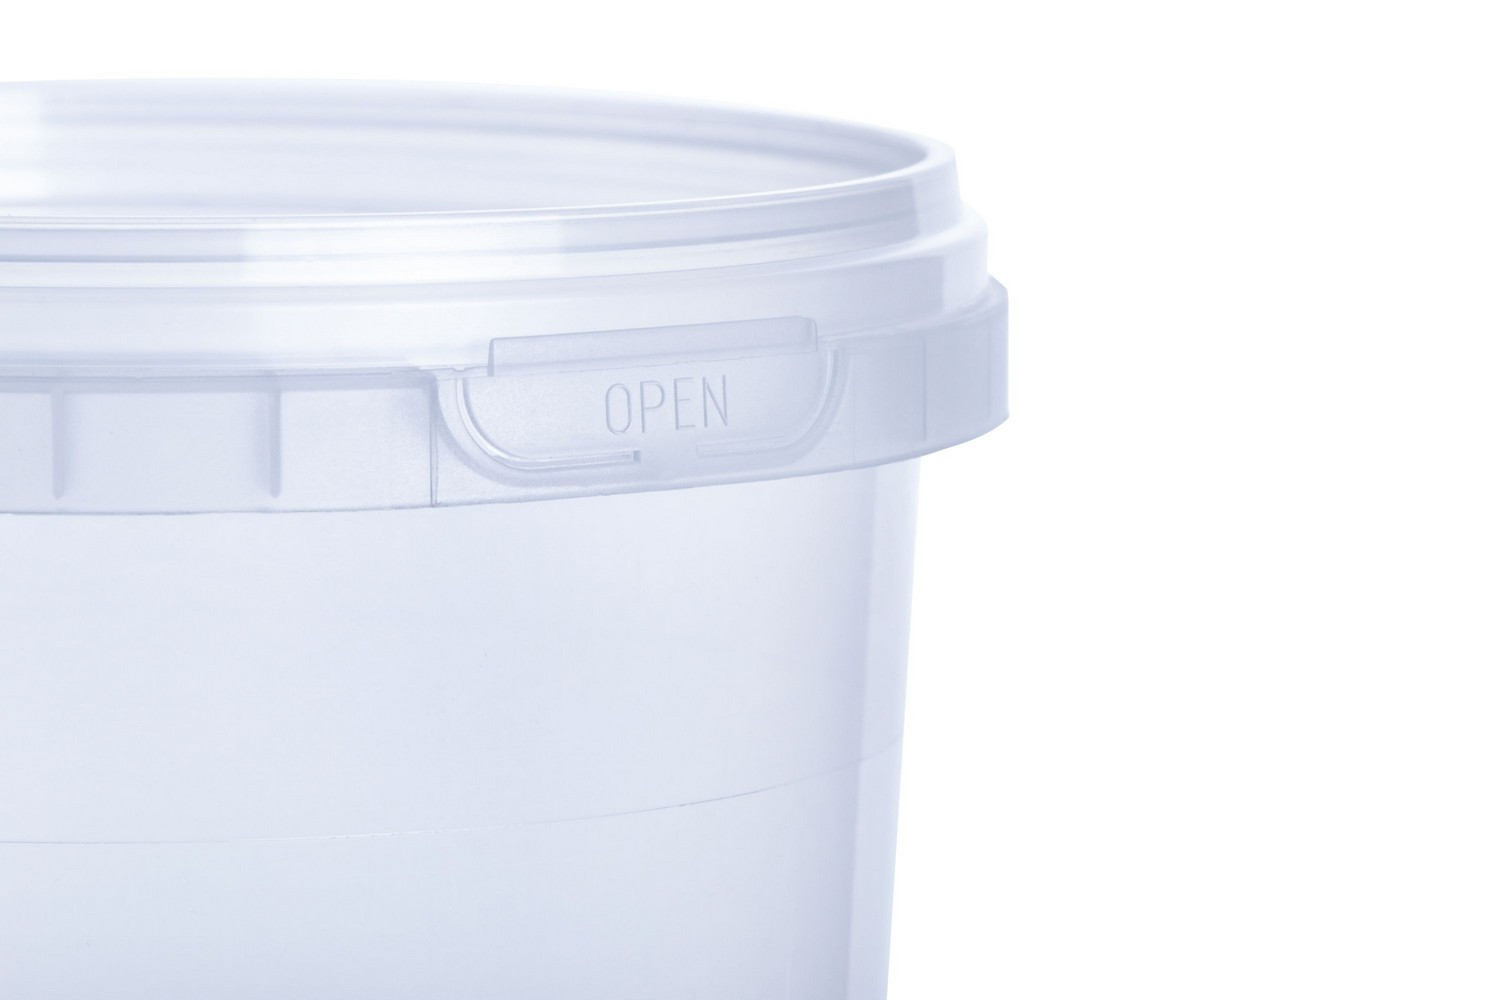 Vitalplast high-quality plastic containers for food products 350 ml manufactured Ukraine soups